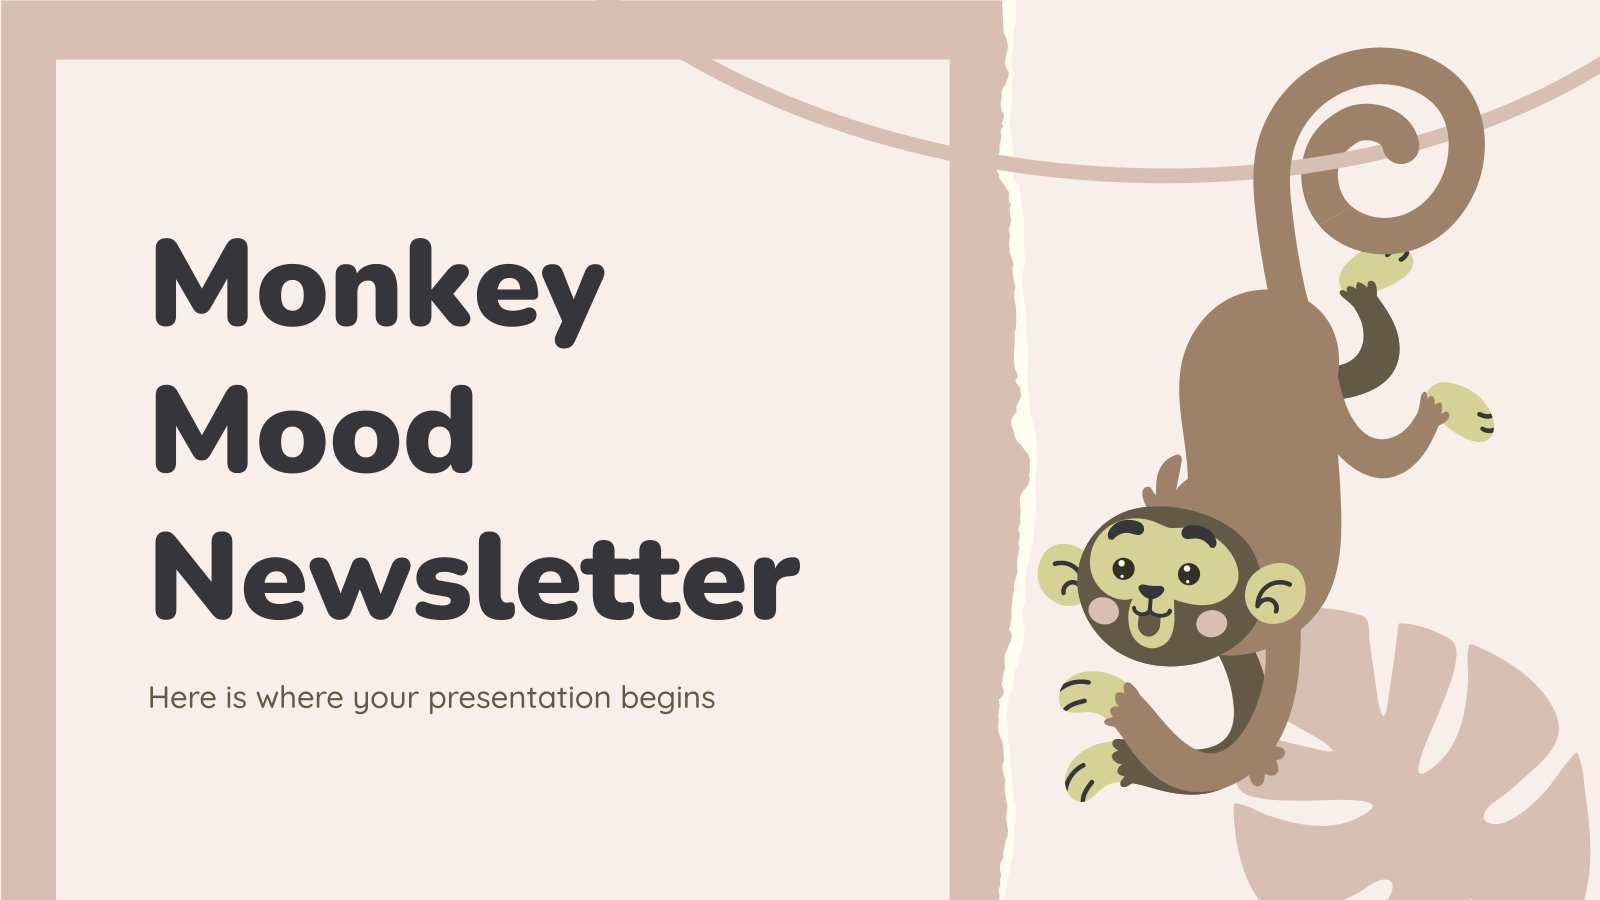 Monkey Mood Newsletter presentation template